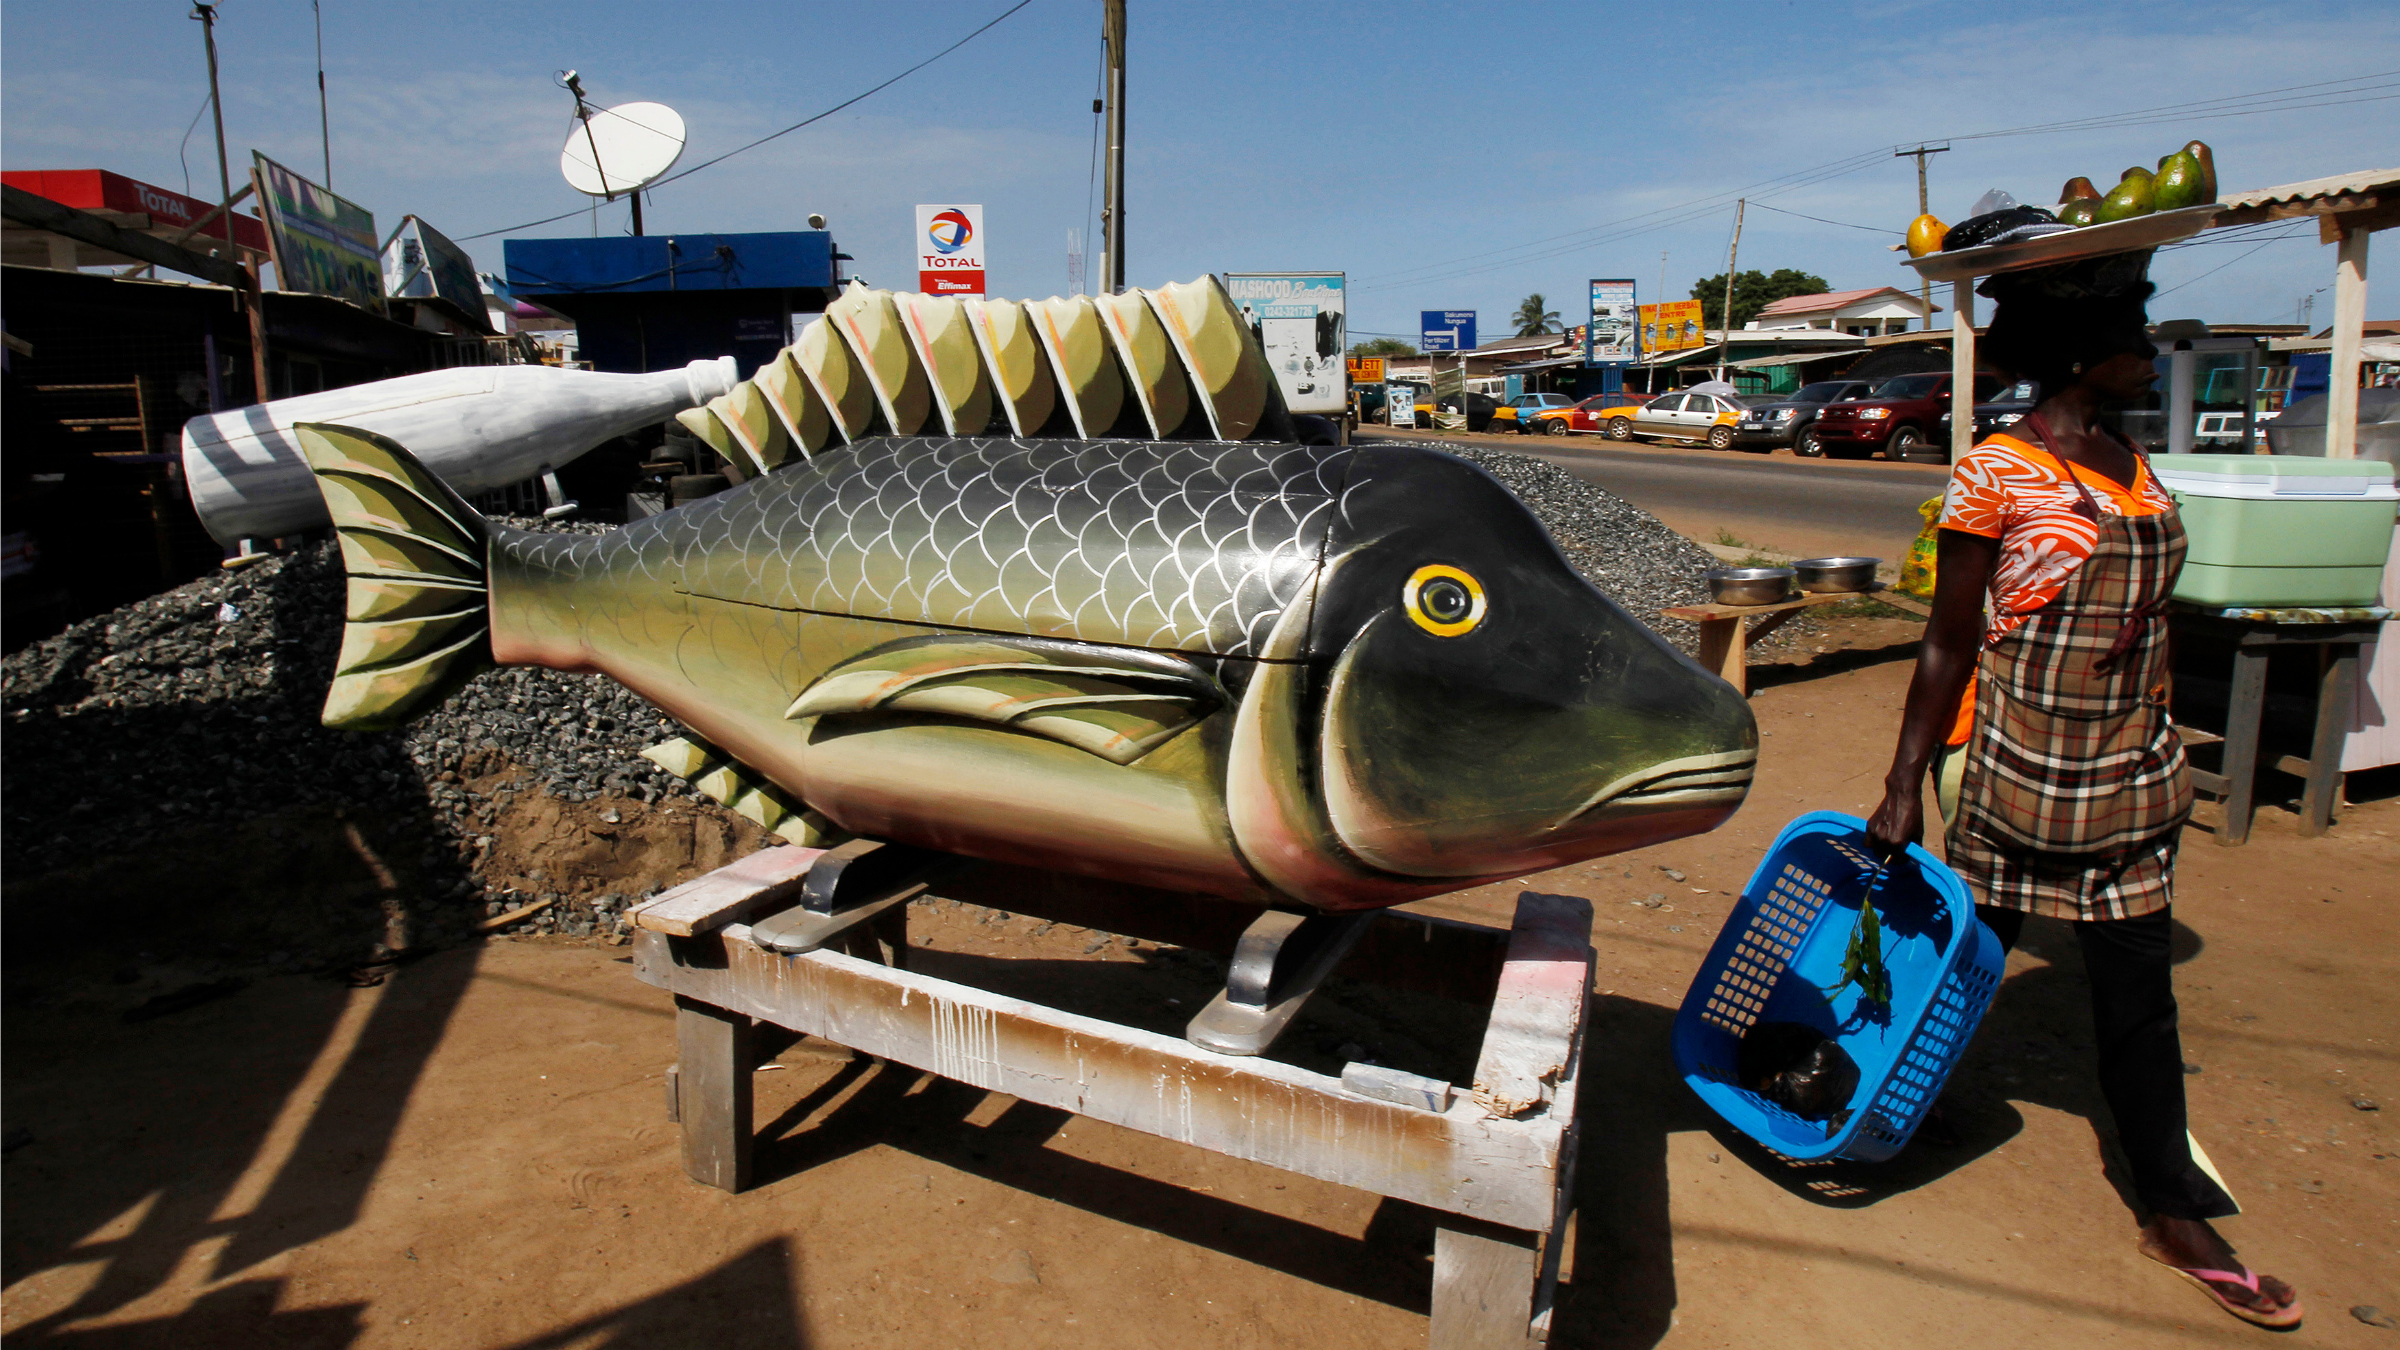 Fish-shaped coffin